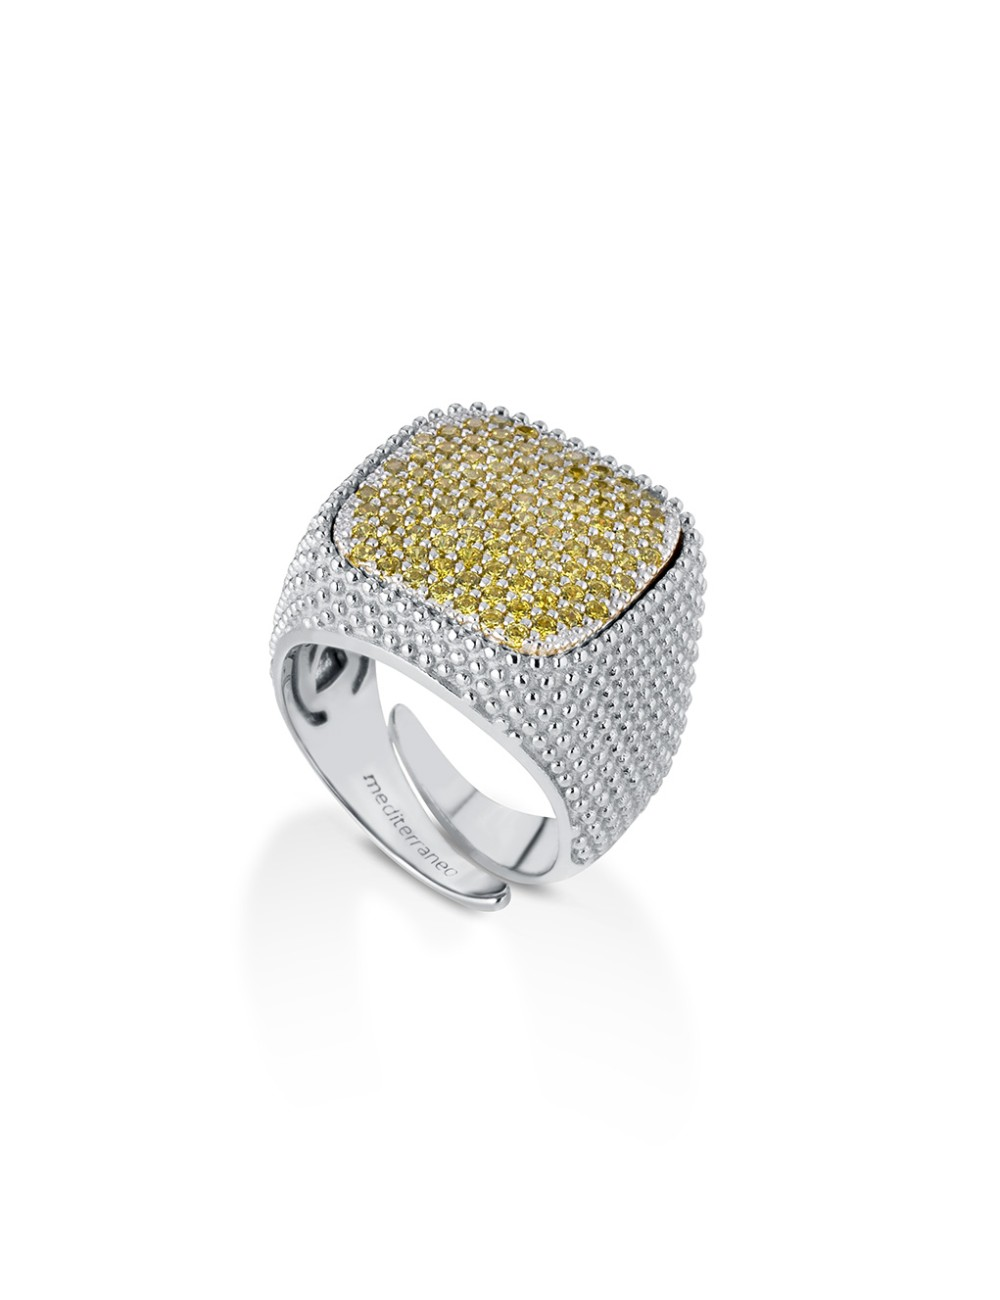 COLLANA ROMANTICA FLOREALE MEDIO MR24RC02